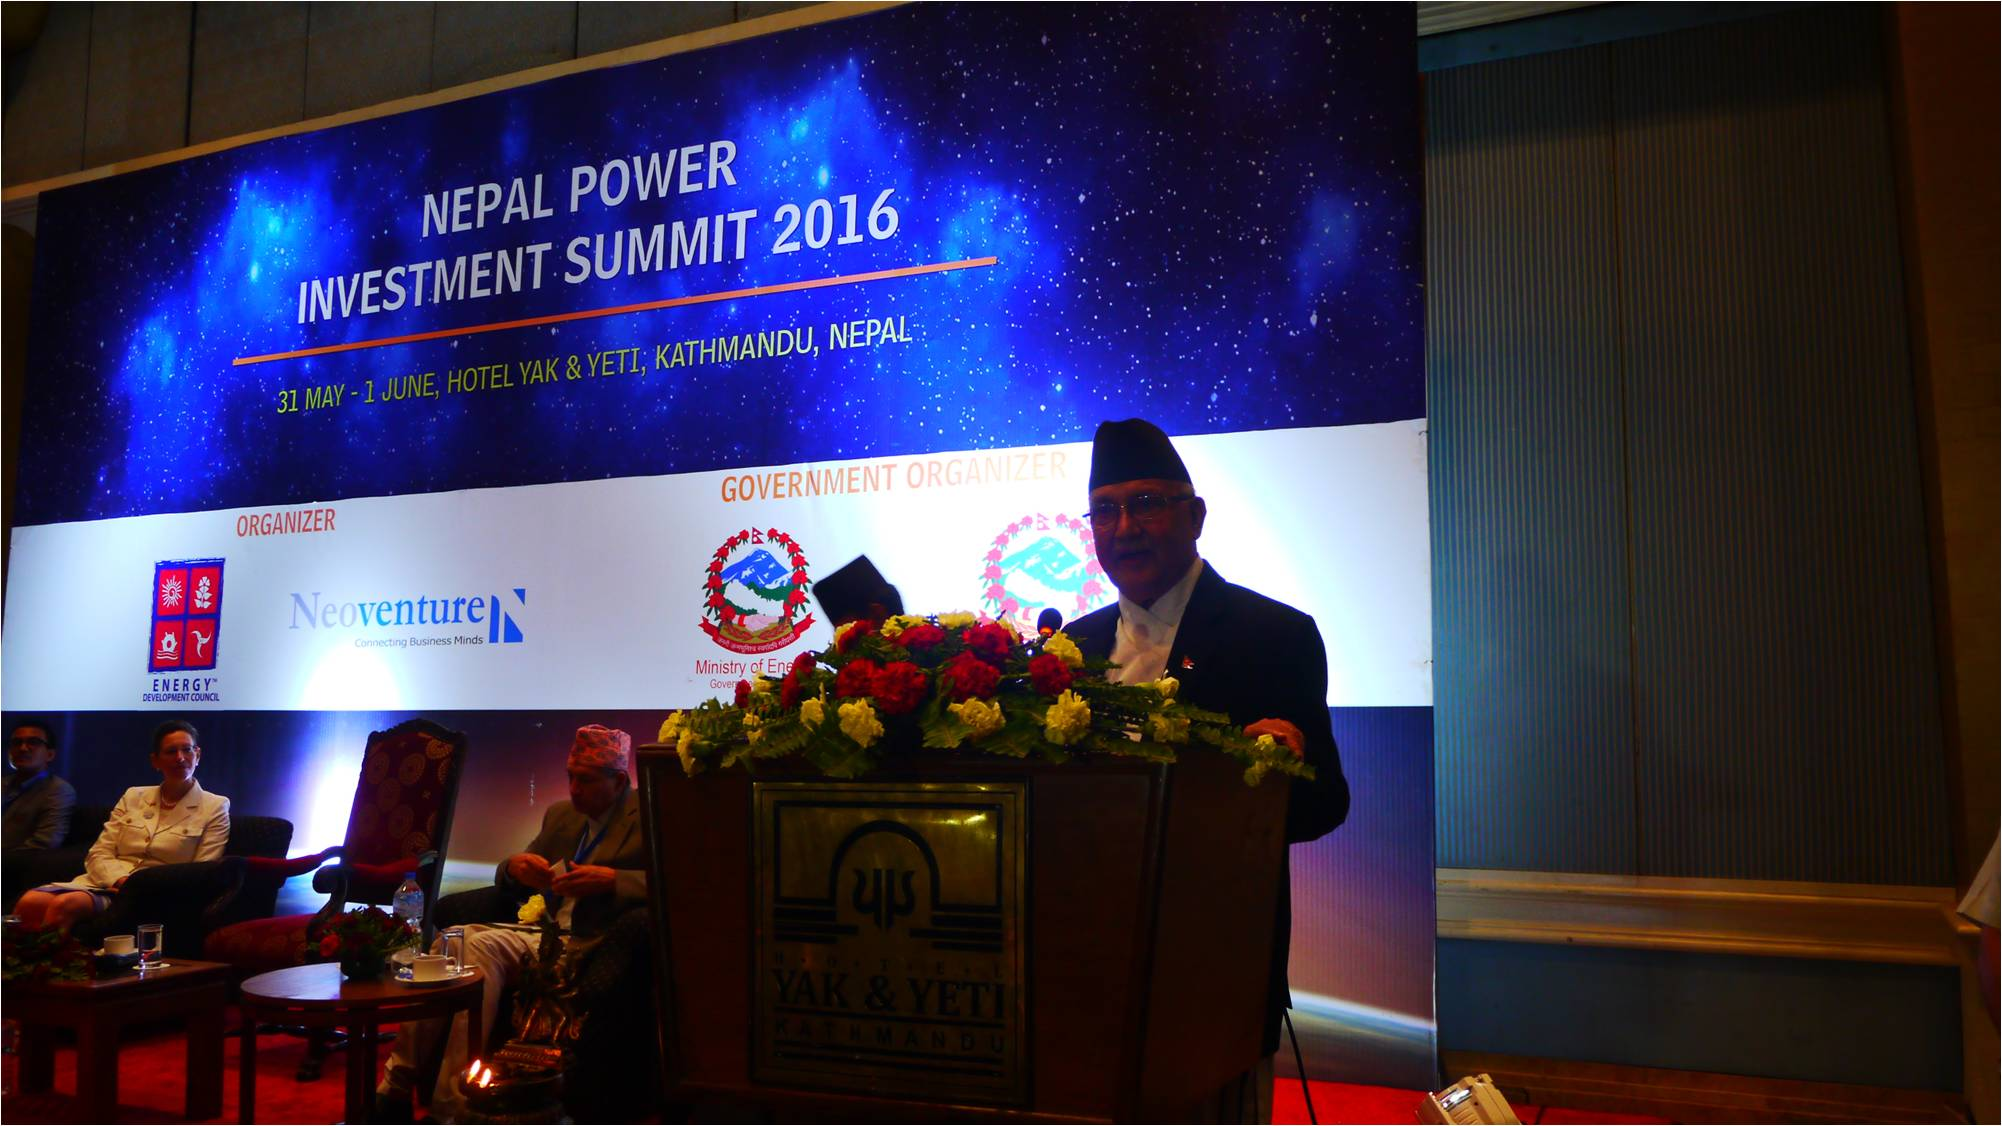 Nepal Power Investment Summit 2016- the future battery of South Asia (31st May-3rd June'2016),Kathmandu